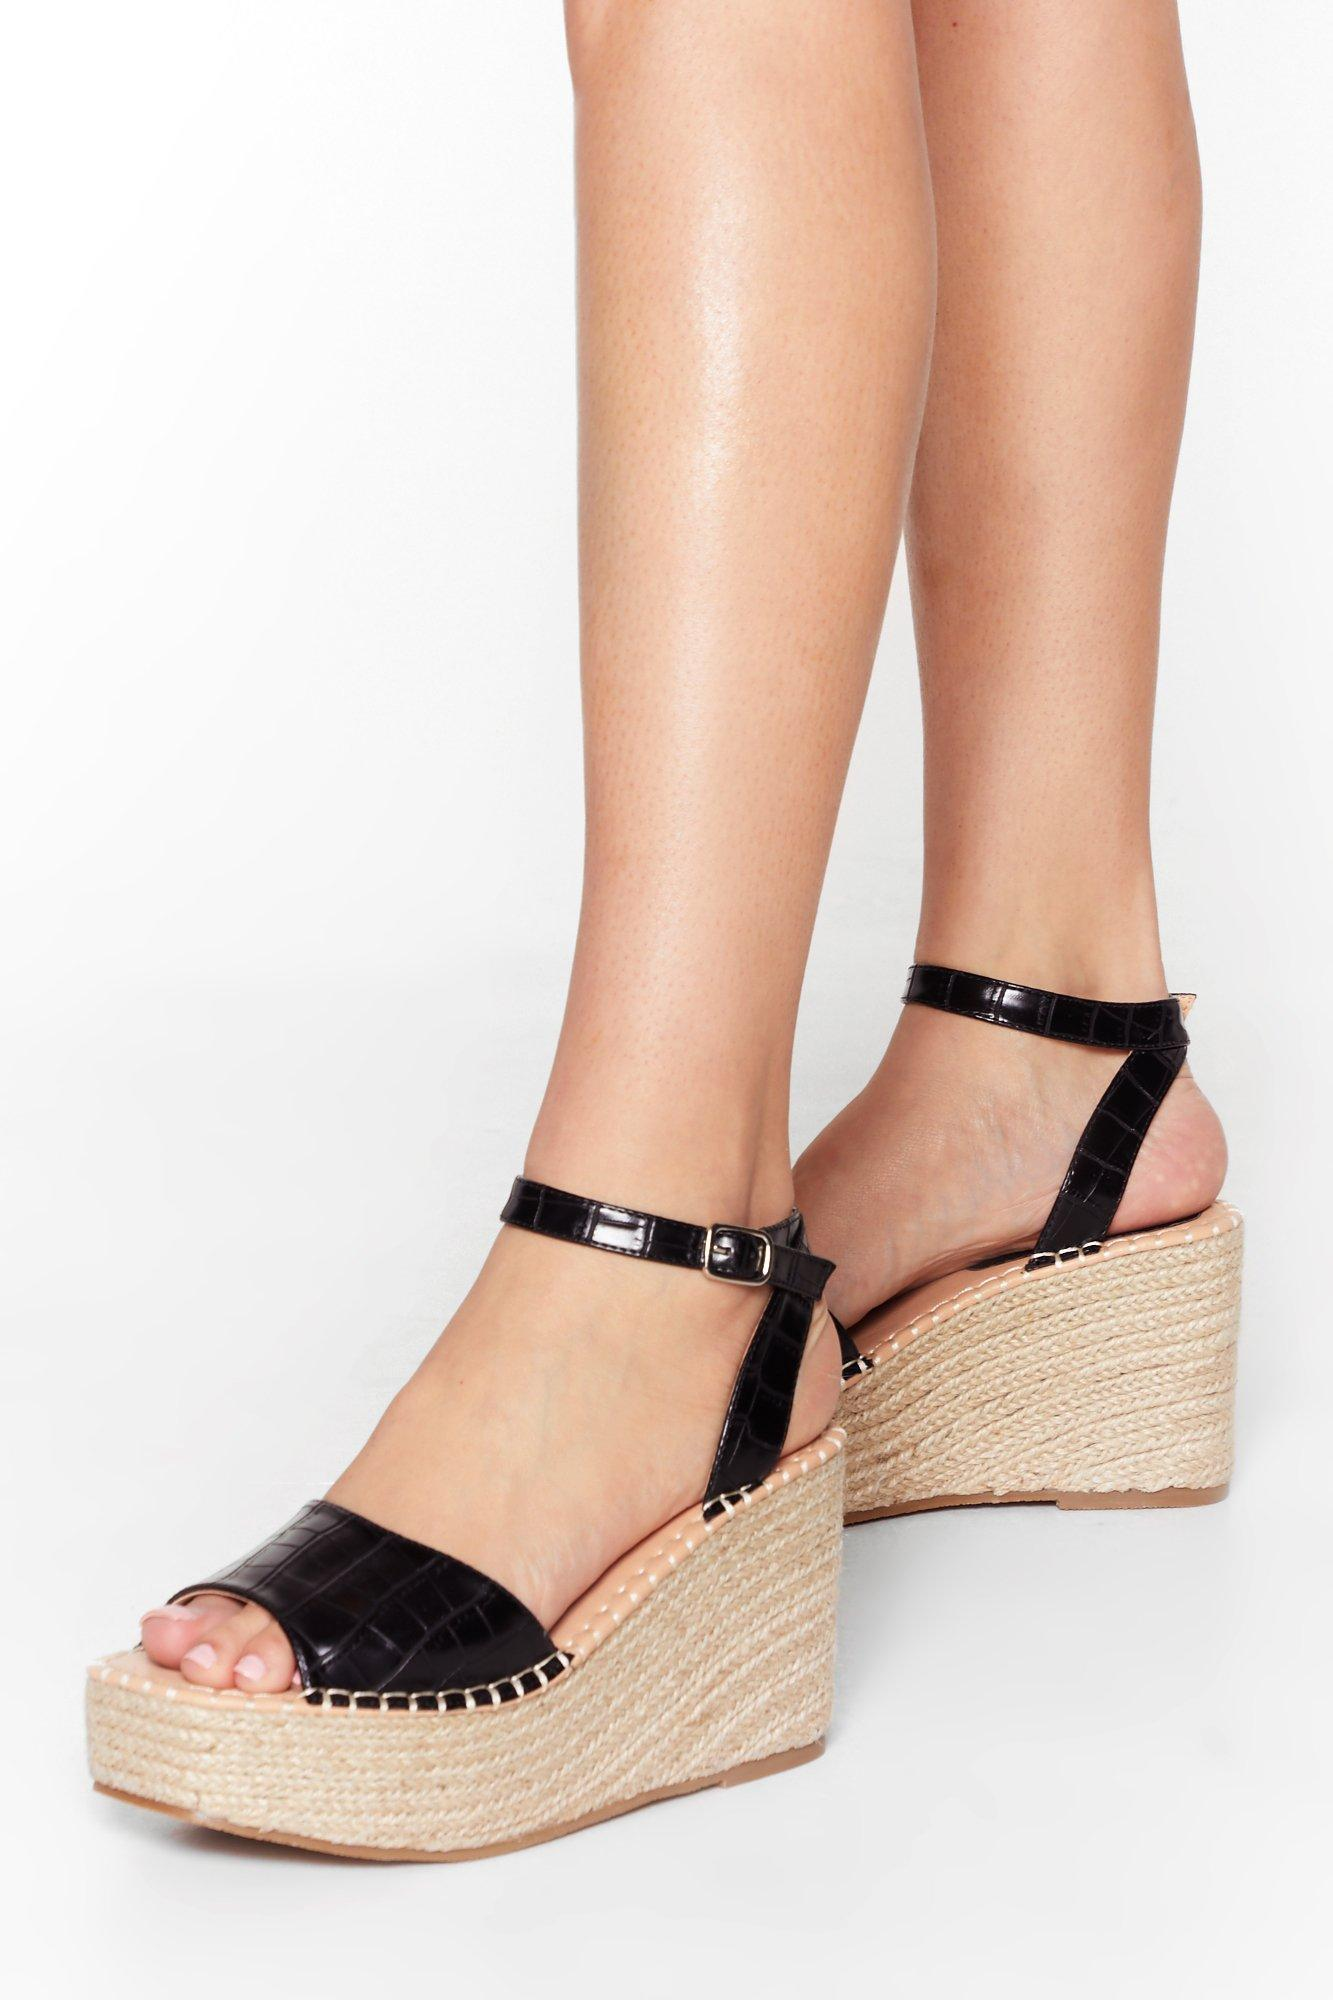 Image of Womens Croc With You Woven Wedge Sandals - Black